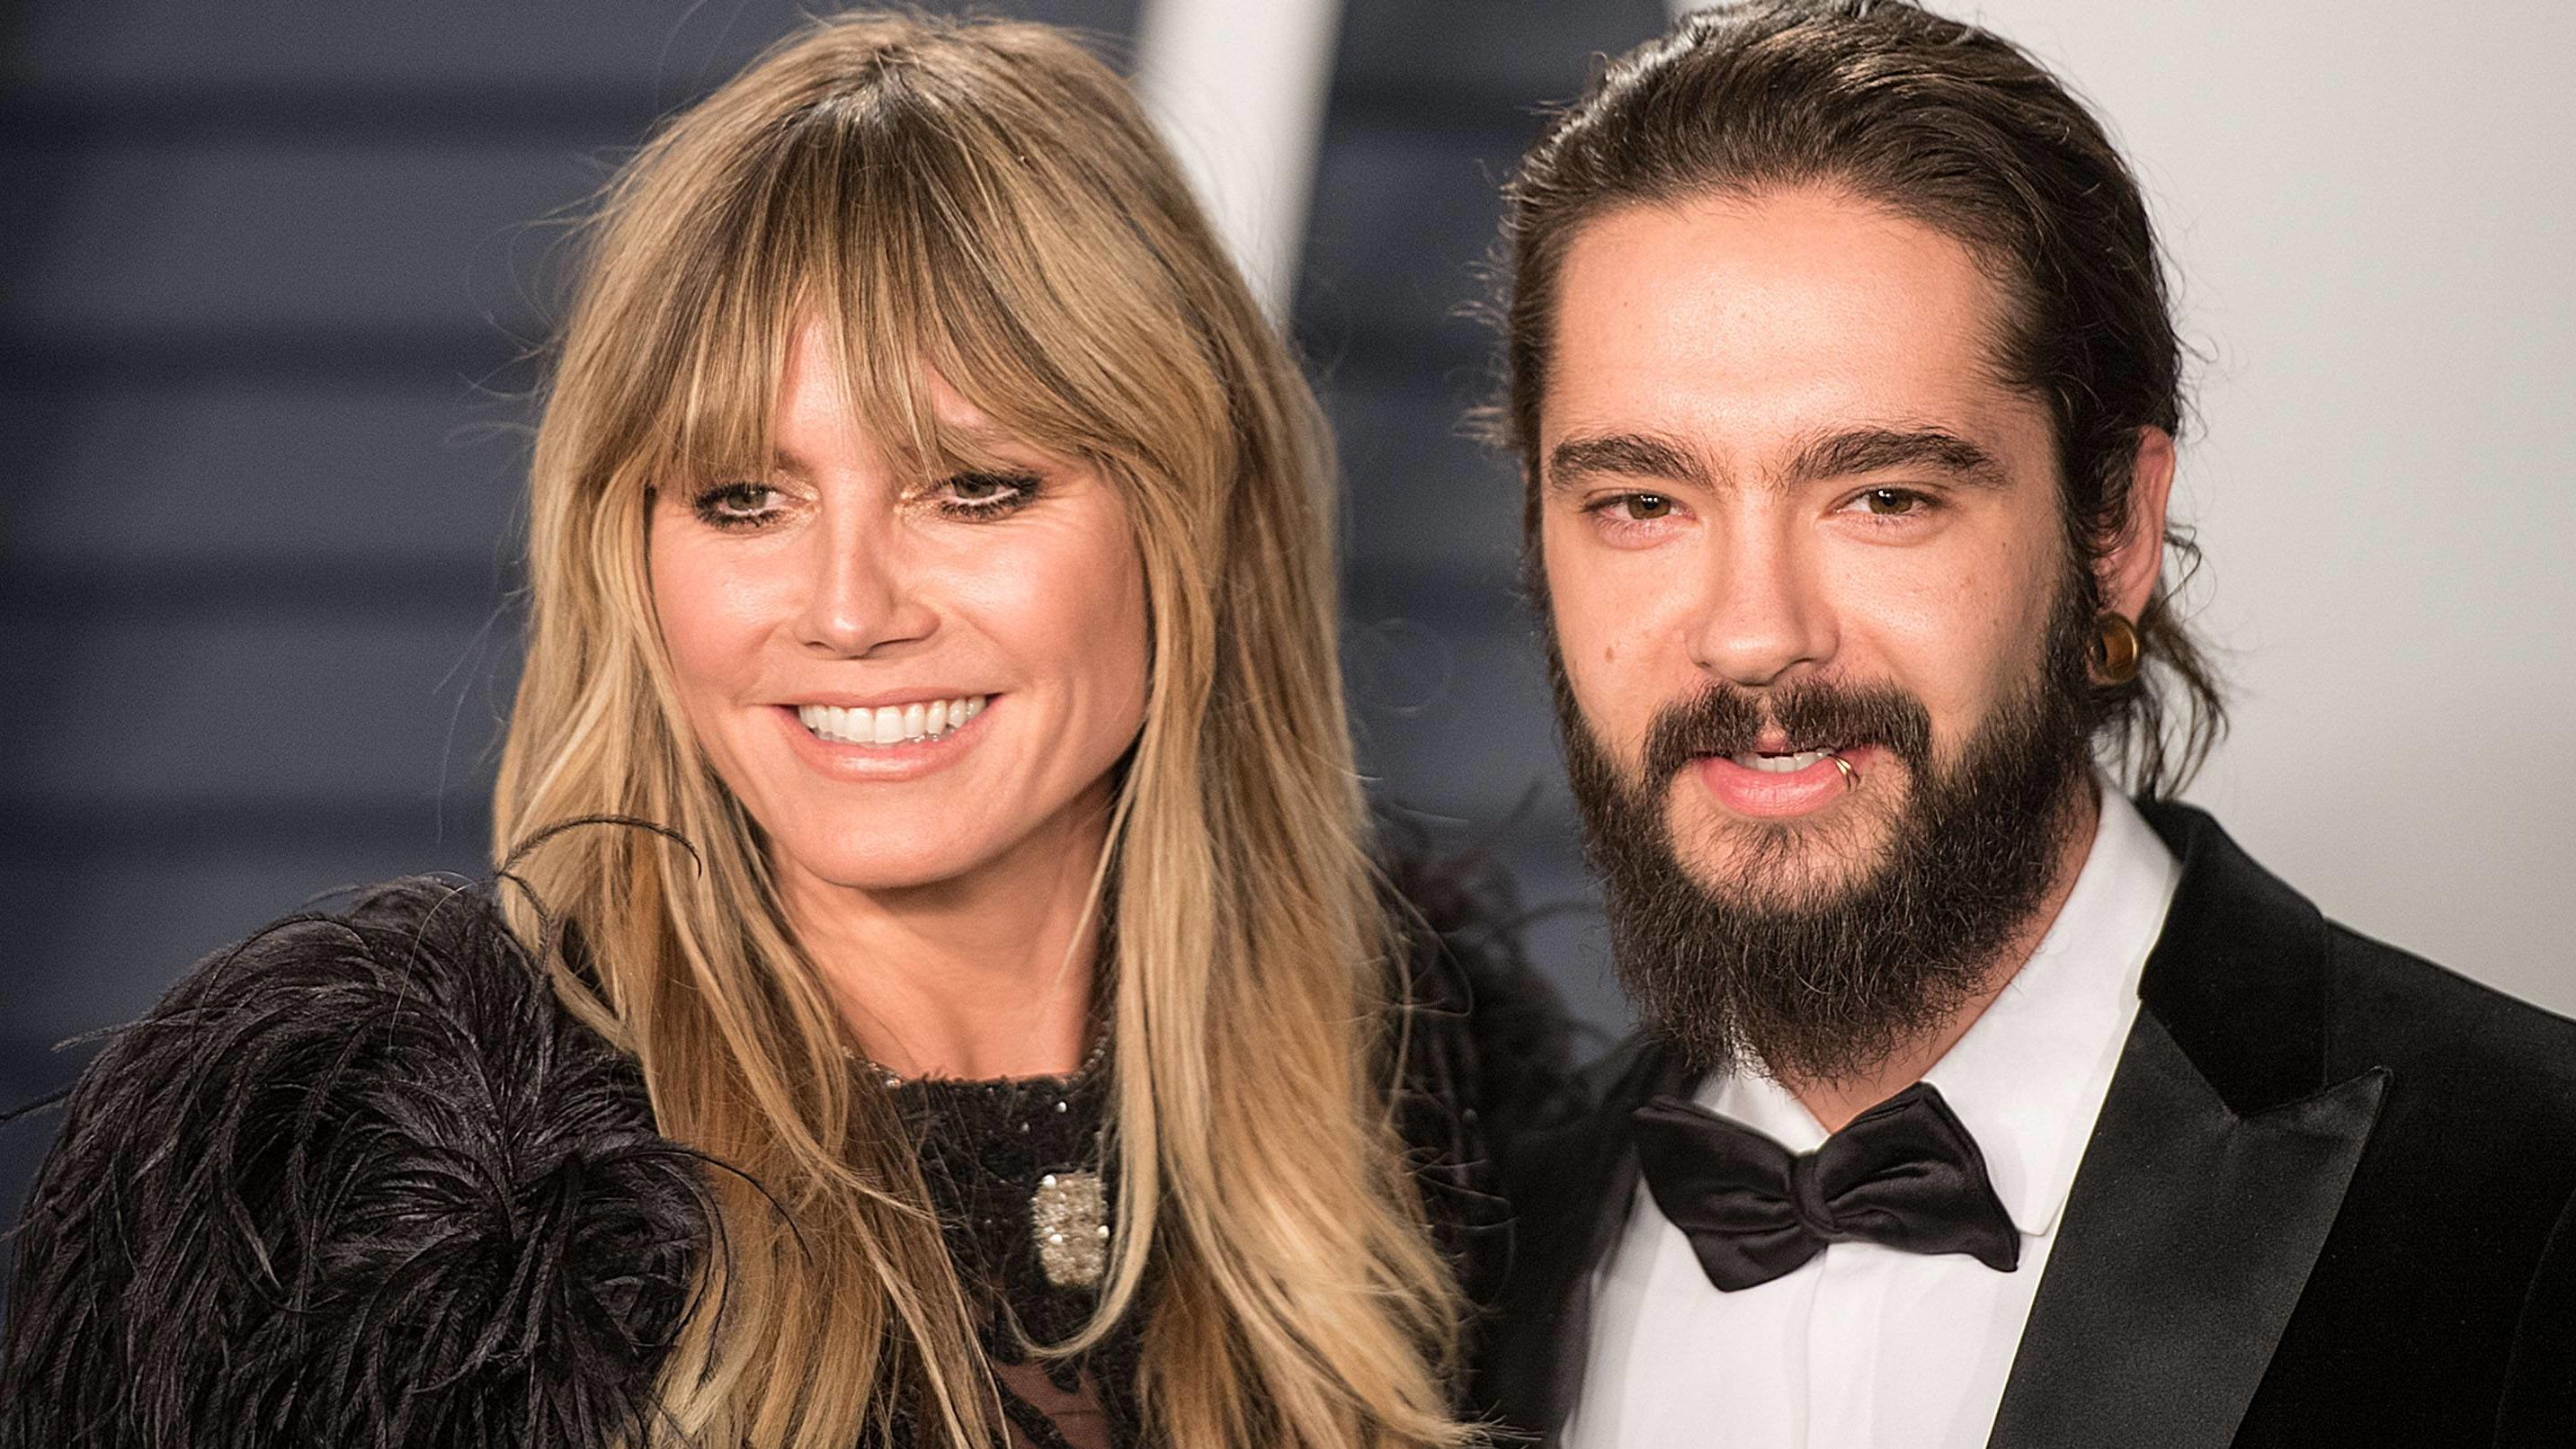 February 24, 2019 - Beverly Hills, California, United States of America - Heidi Klum (L) and Tom Kaulitz at the 2019 Vanity Fair Oscar Party held at the Wallis Annenberg Center in Beverly Hills, California on Sunday February 24, 2019. JAVIER ROJAS/PI